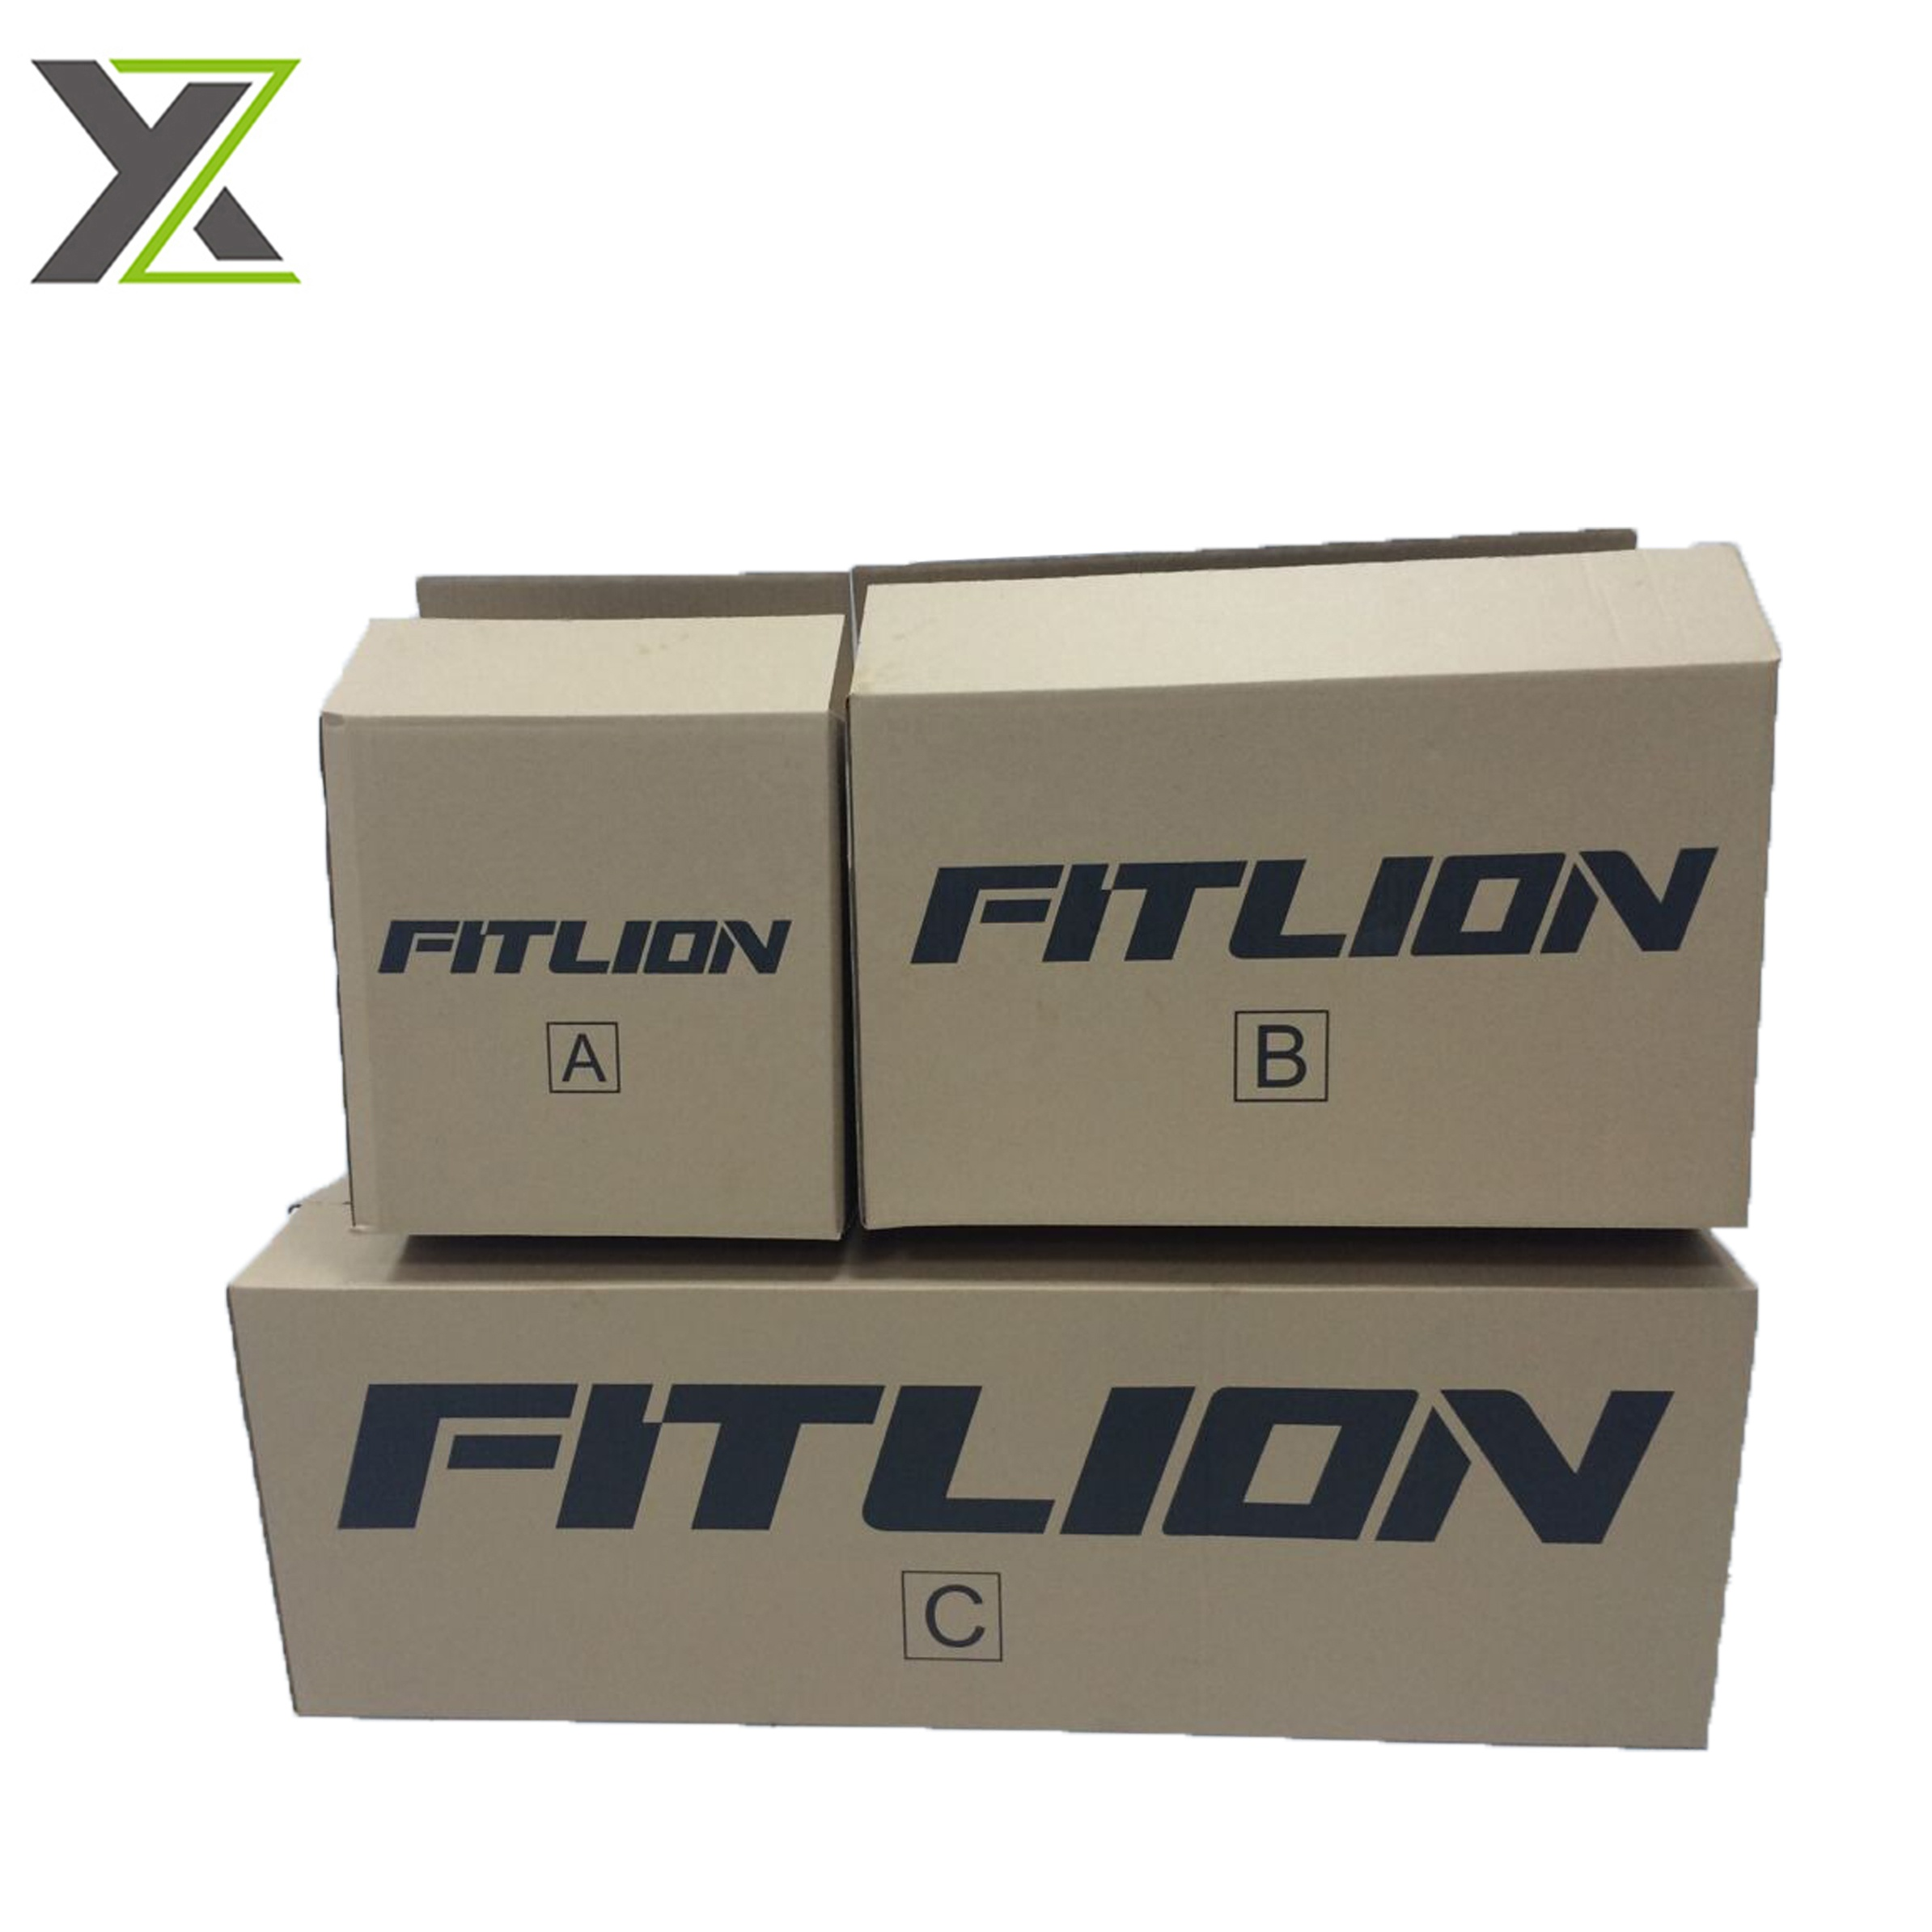 The belt and road custom corrugated carton box for Fitness Equipment